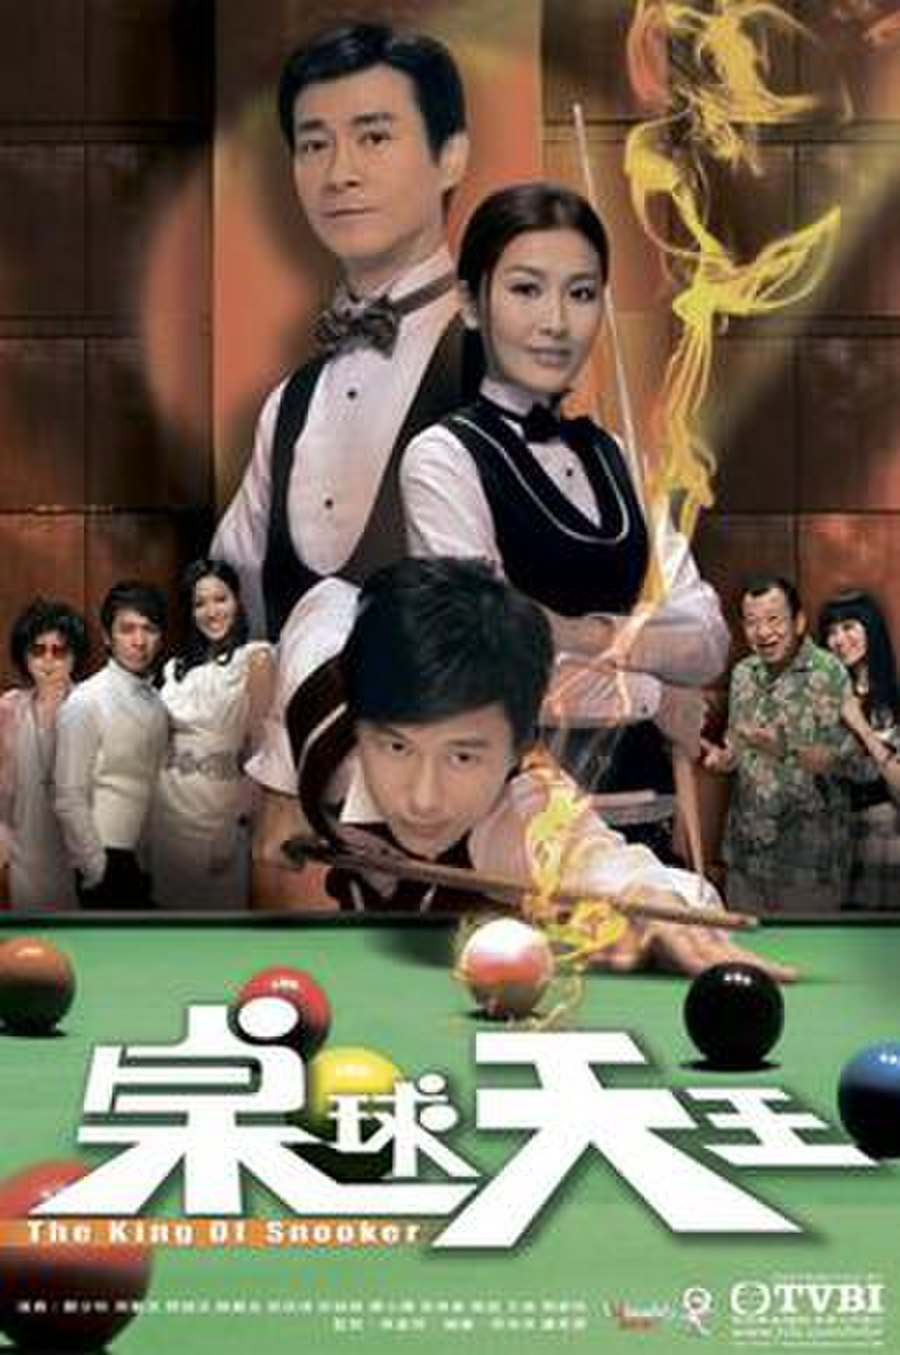 The King of Snooker   桌球天王